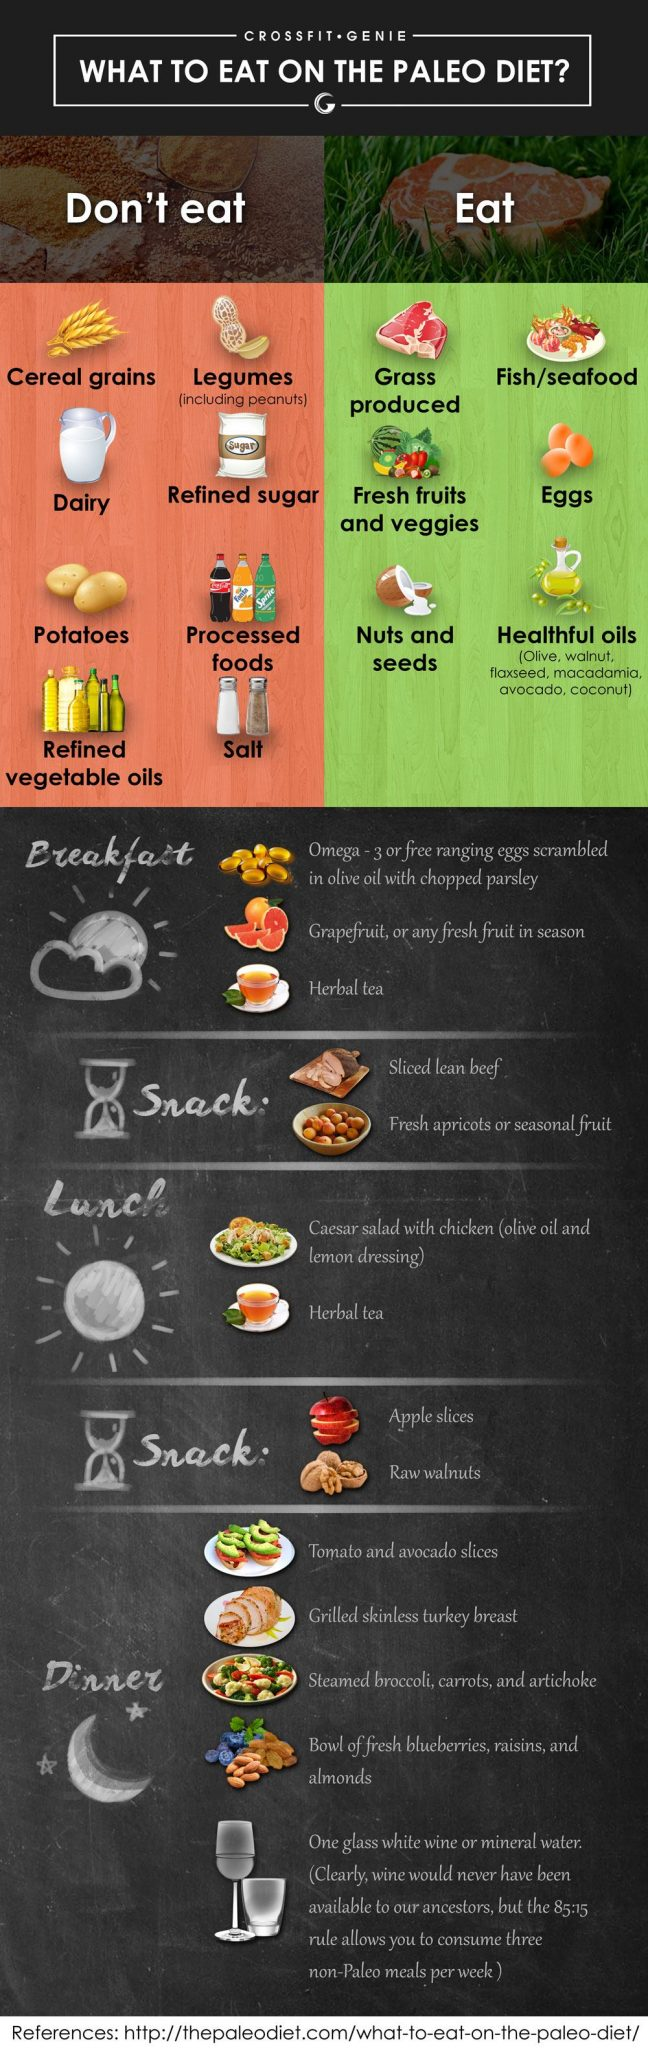 what-to-eat-on-the-paleo-diet-infographic-1